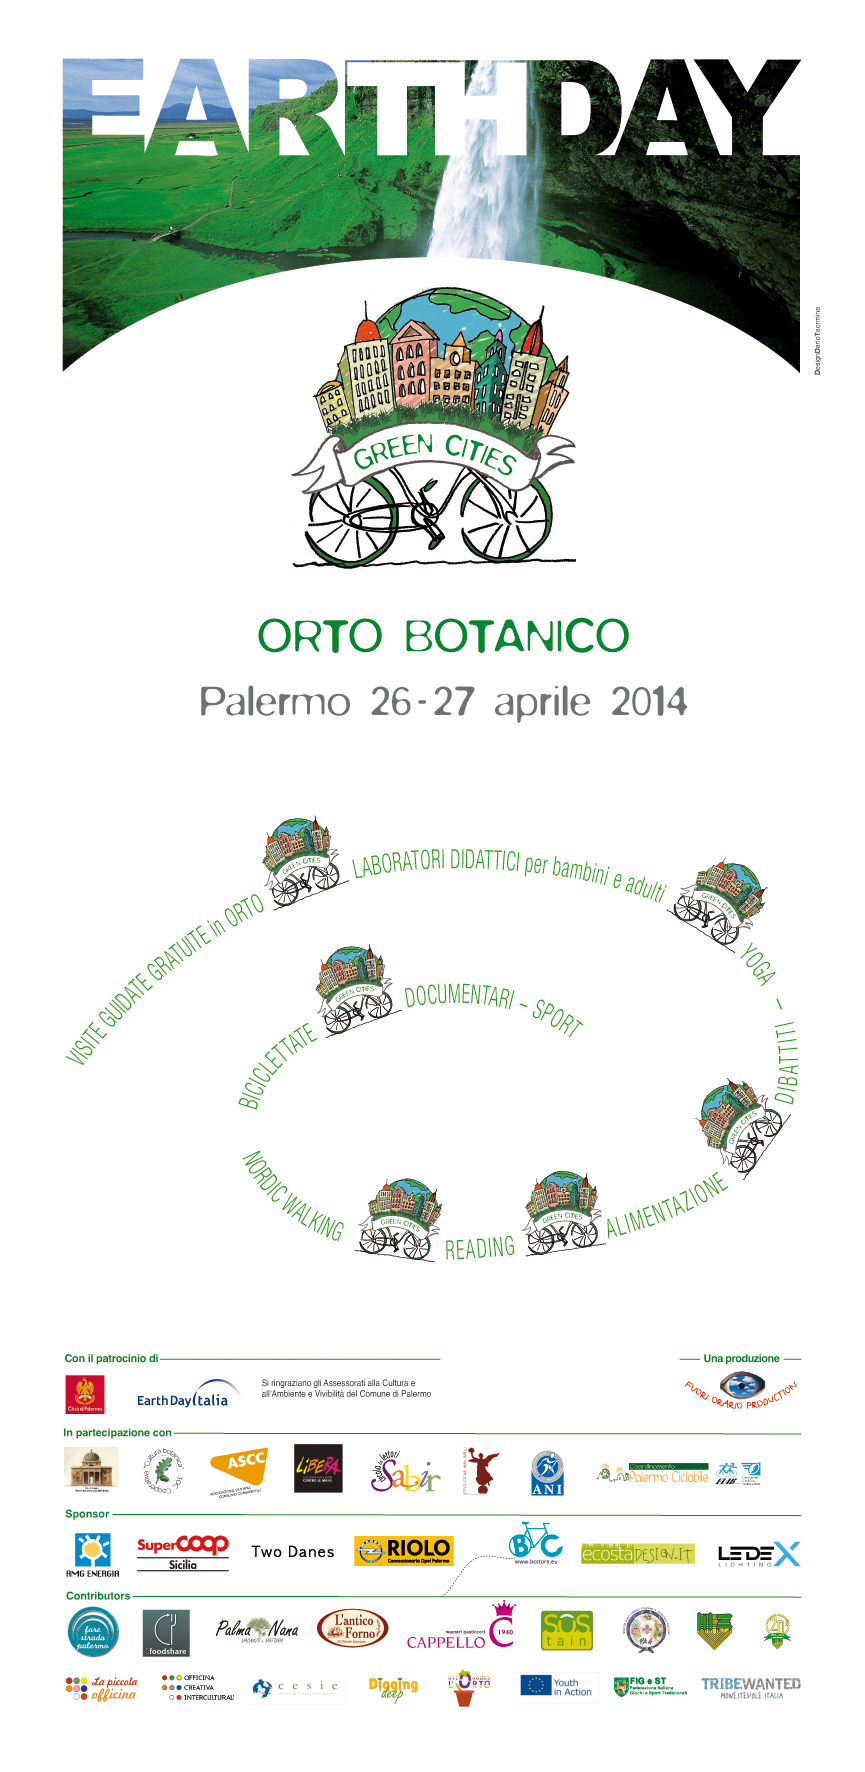 earth day palermo 2014